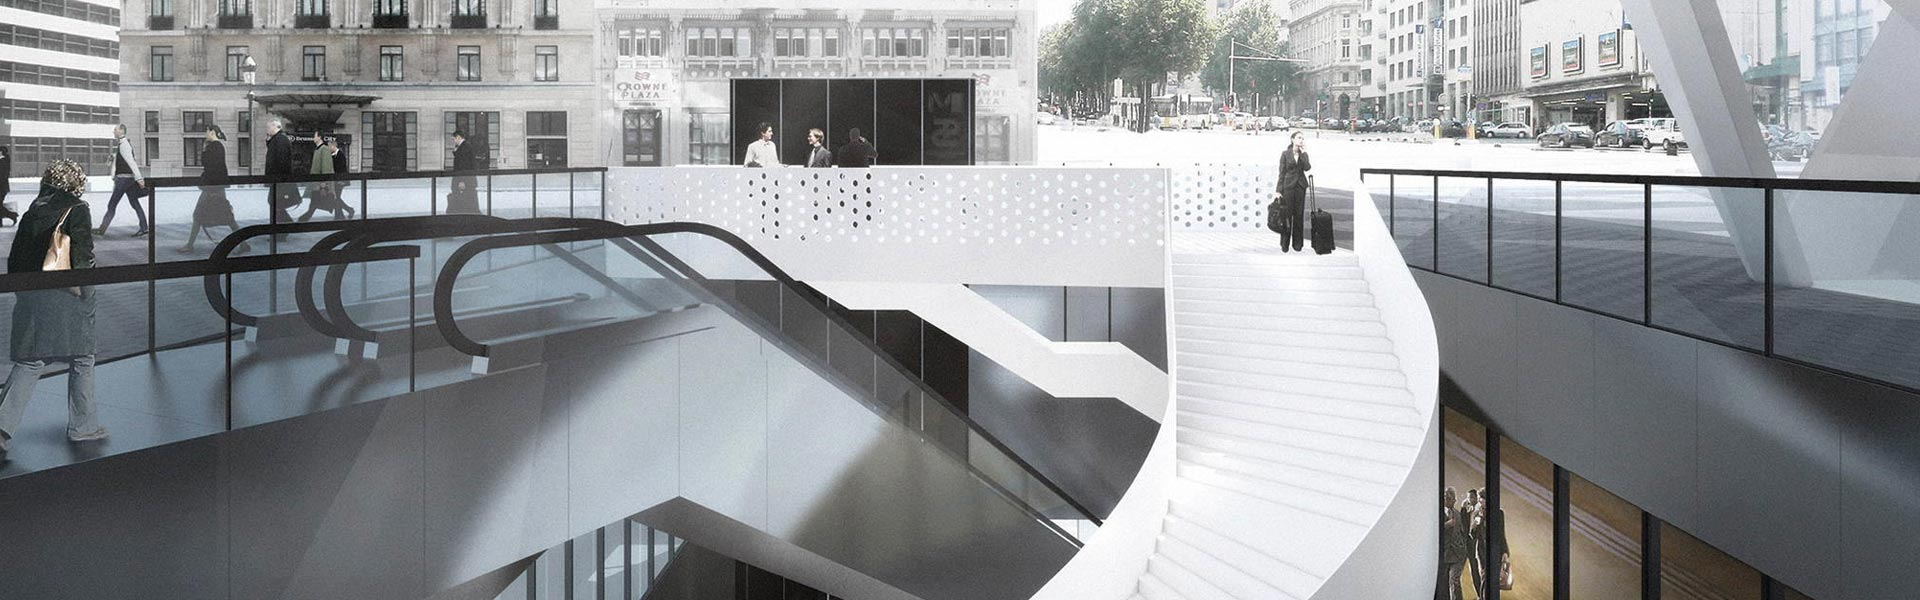 1_renovation and redesign of the rogier square and station